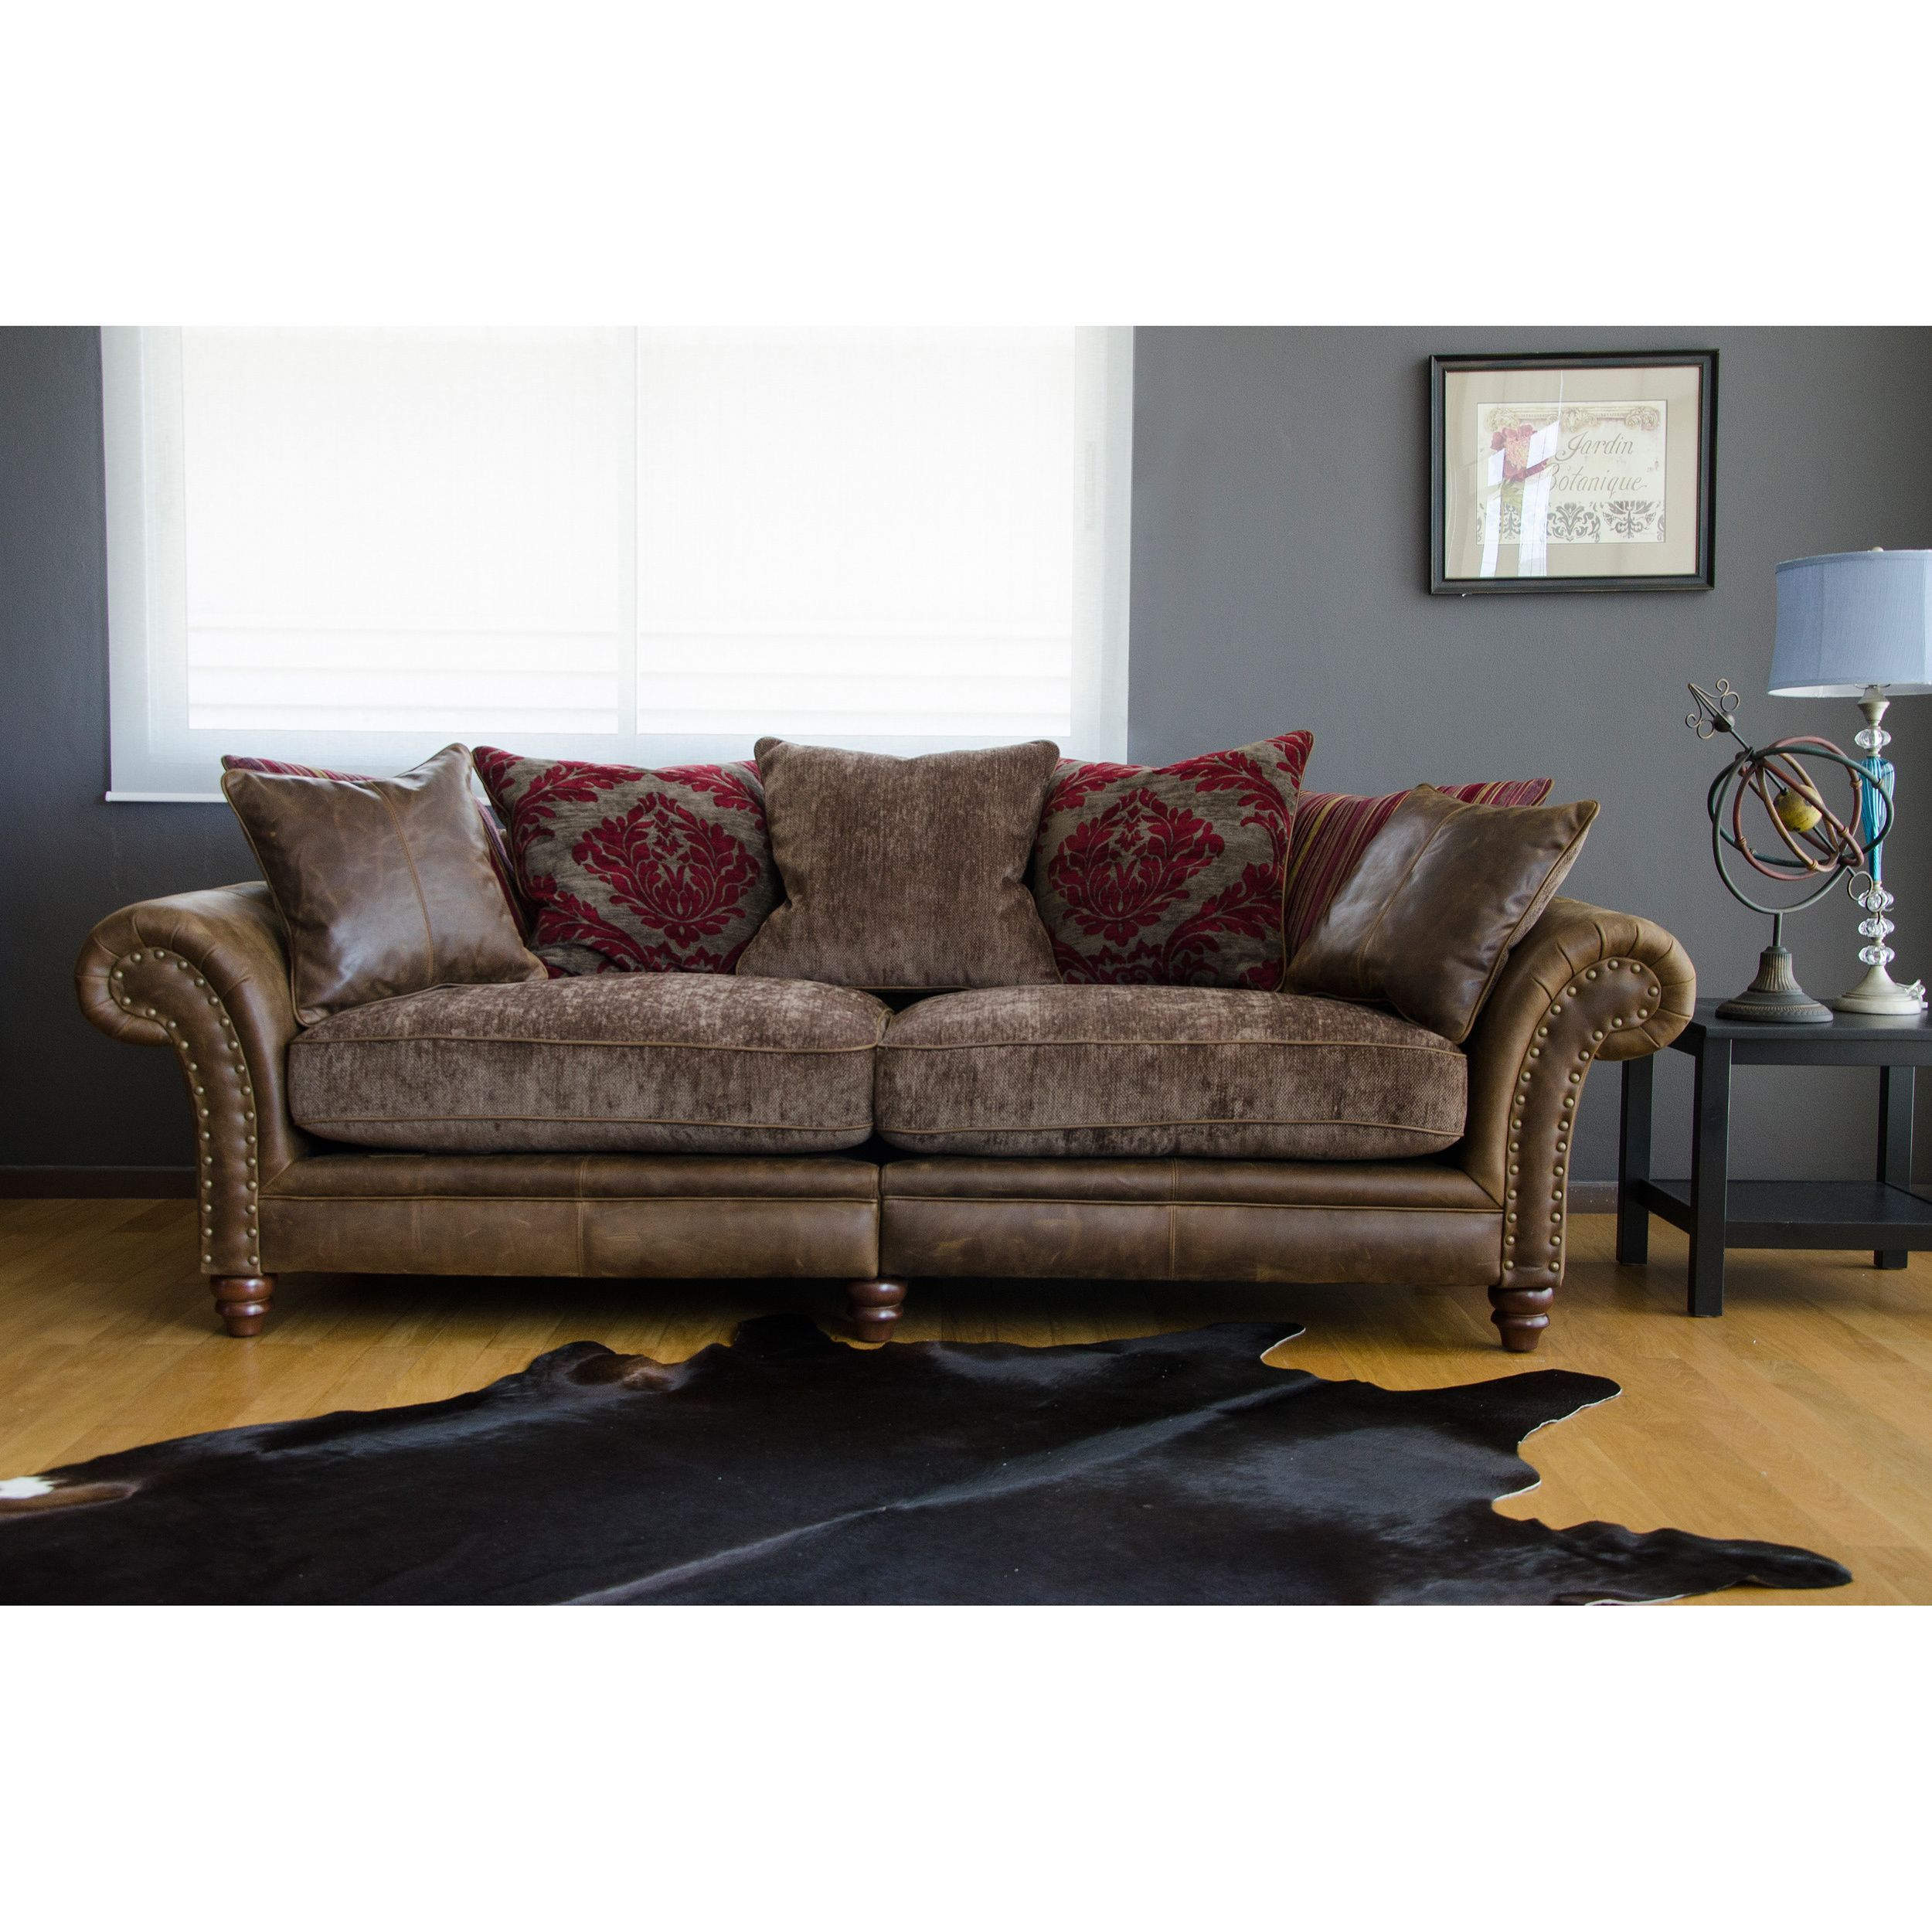 This Hudson leather sofa features deep seating and soft feather pillows for  maximum comfort. Perfect